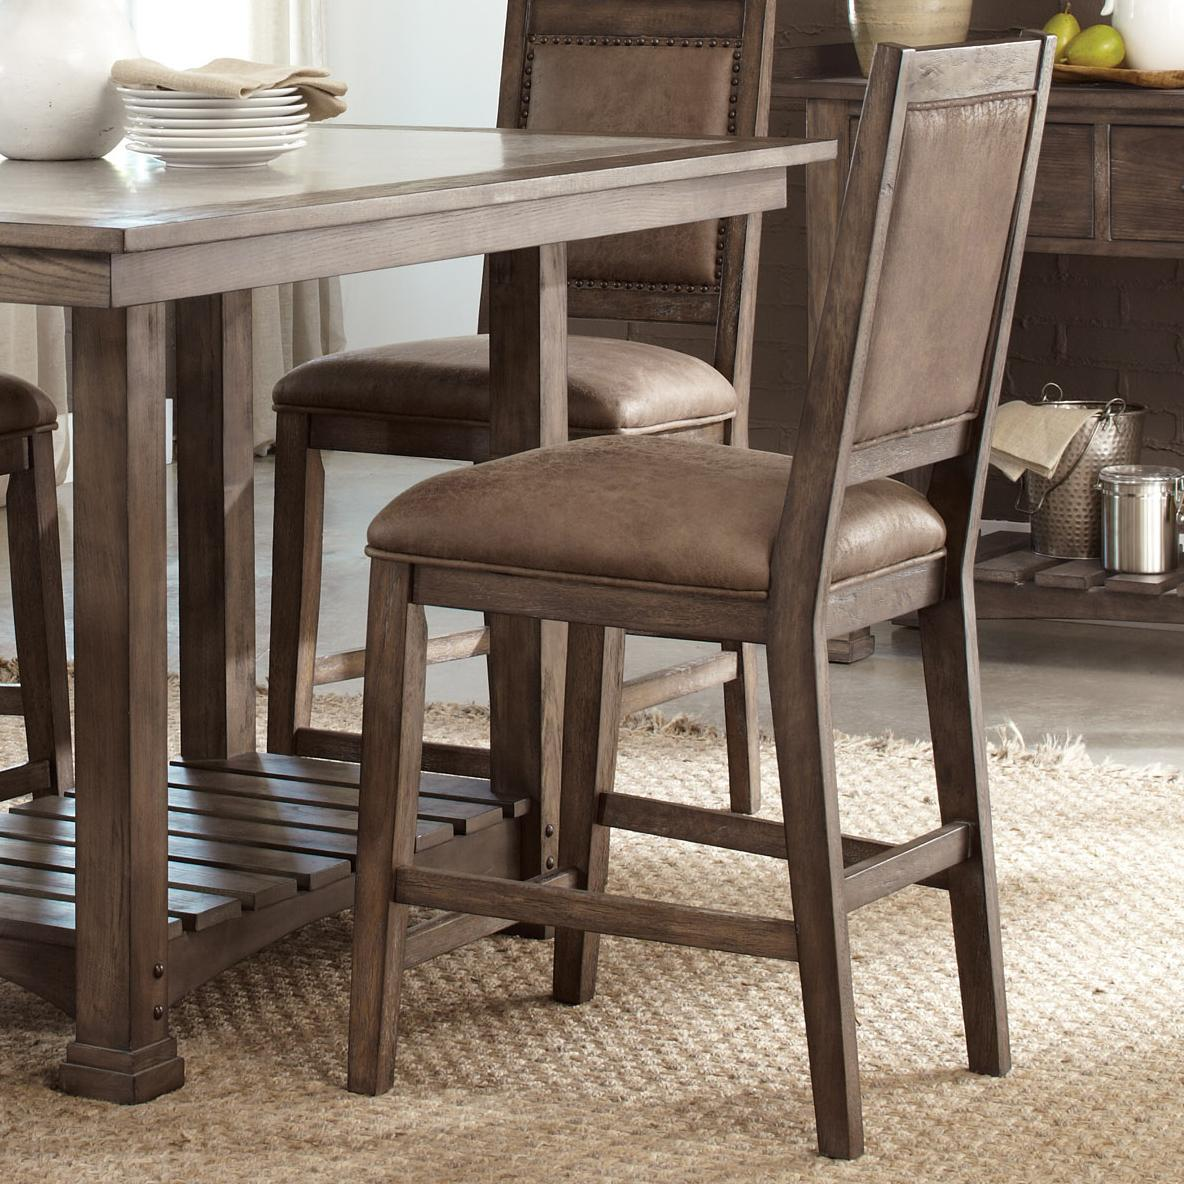 Stone Brook Upholstered Counter Chair by Liberty Furniture at Lapeer Furniture & Mattress Center